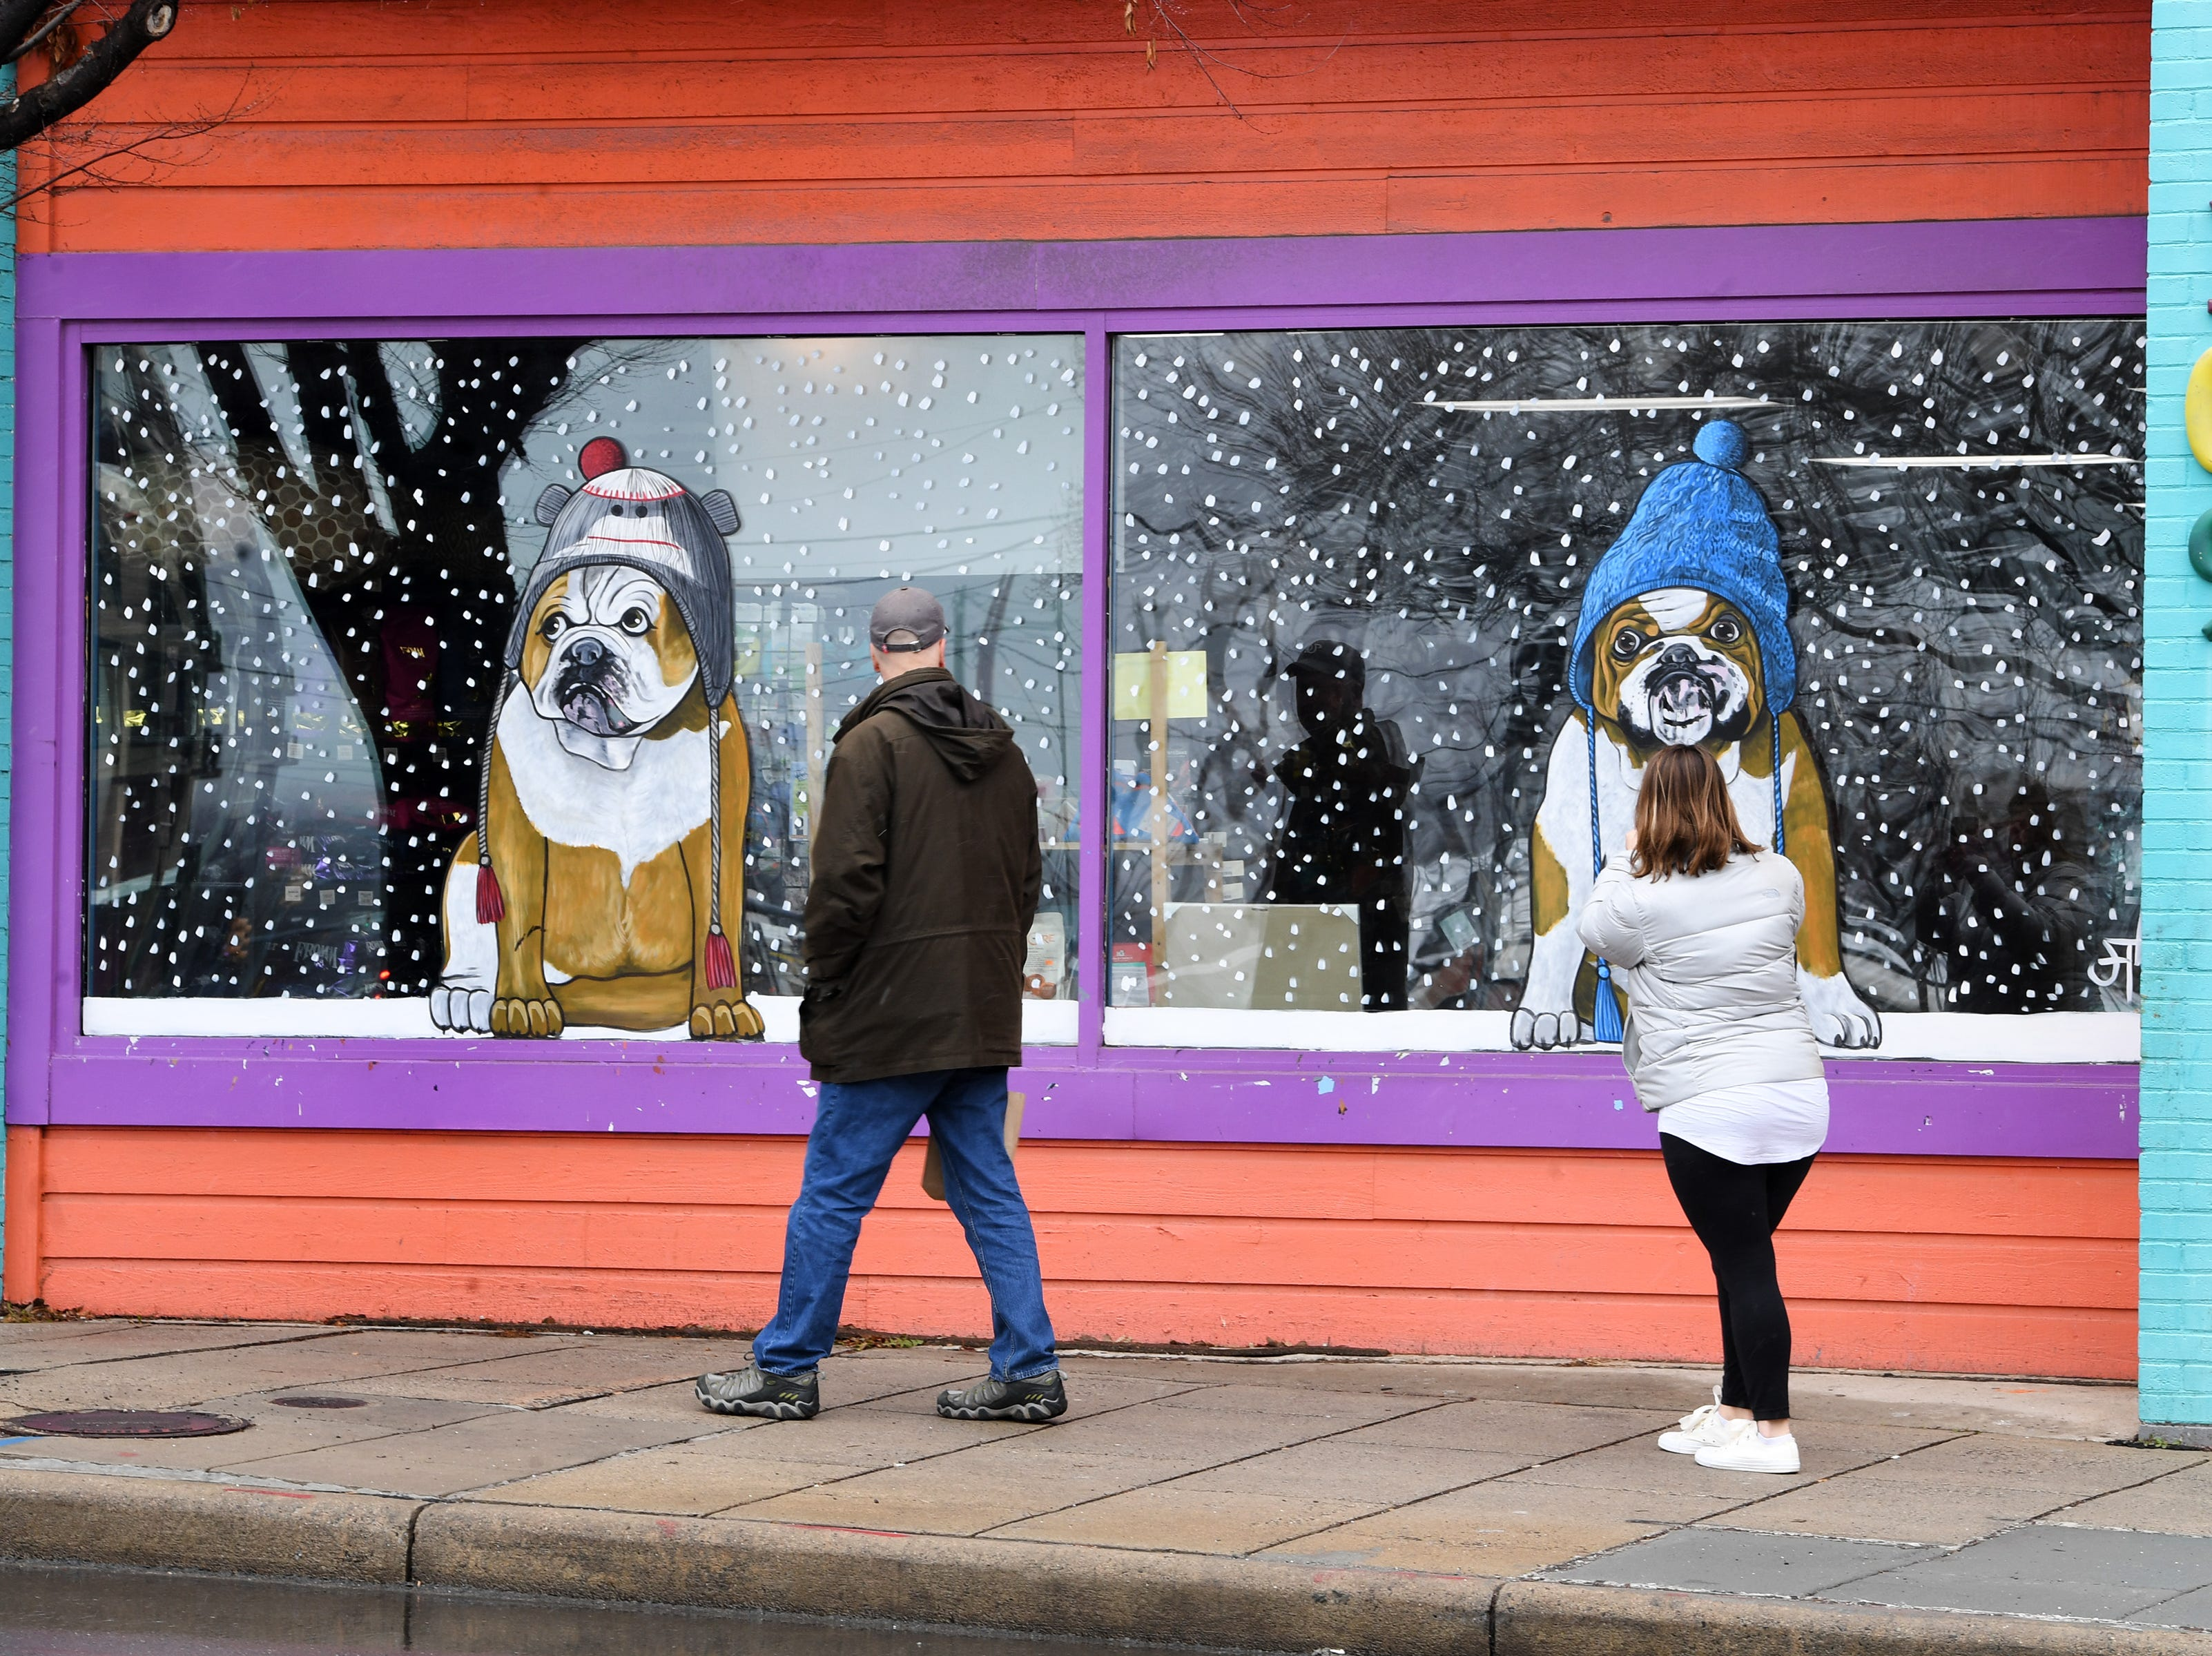 A woman stops to take a photo of a window display downtown on Jan. 29, 2019.